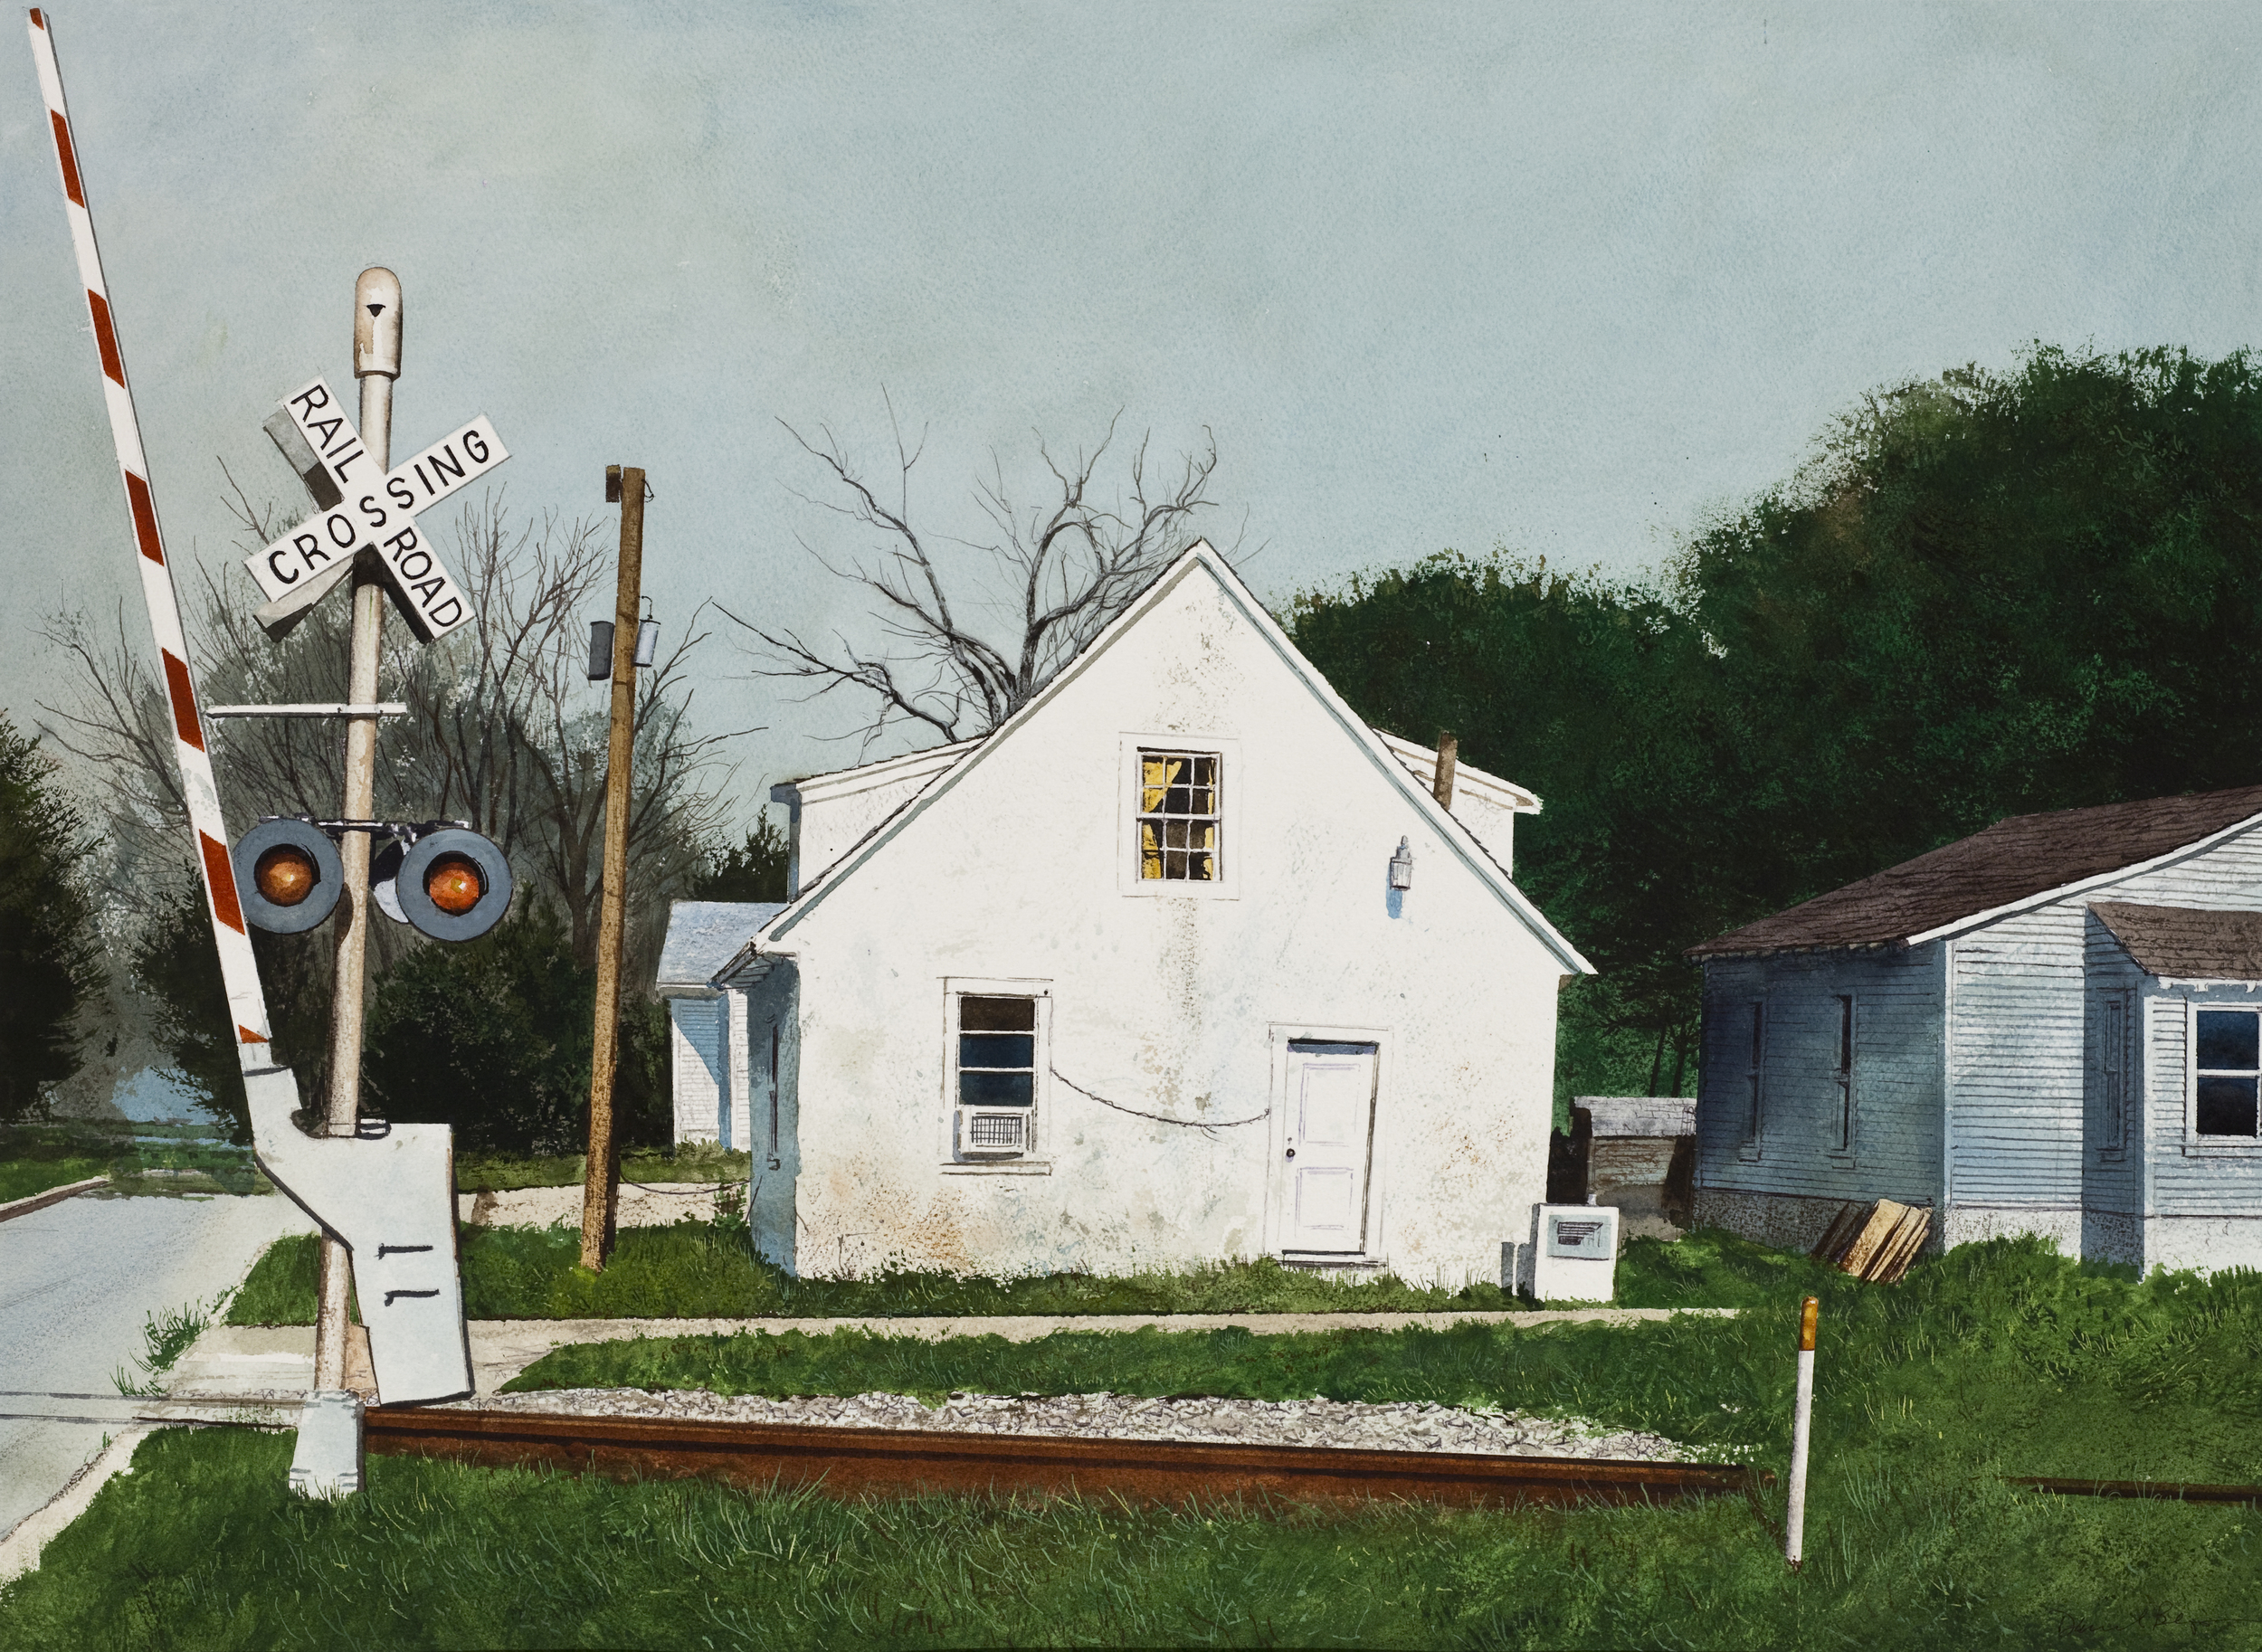 "Daniel Blagg, House By The Railroad, 2012, watercolor on paper, 27 1/2 x 35"". Private Collection, Fort Worth, TX."